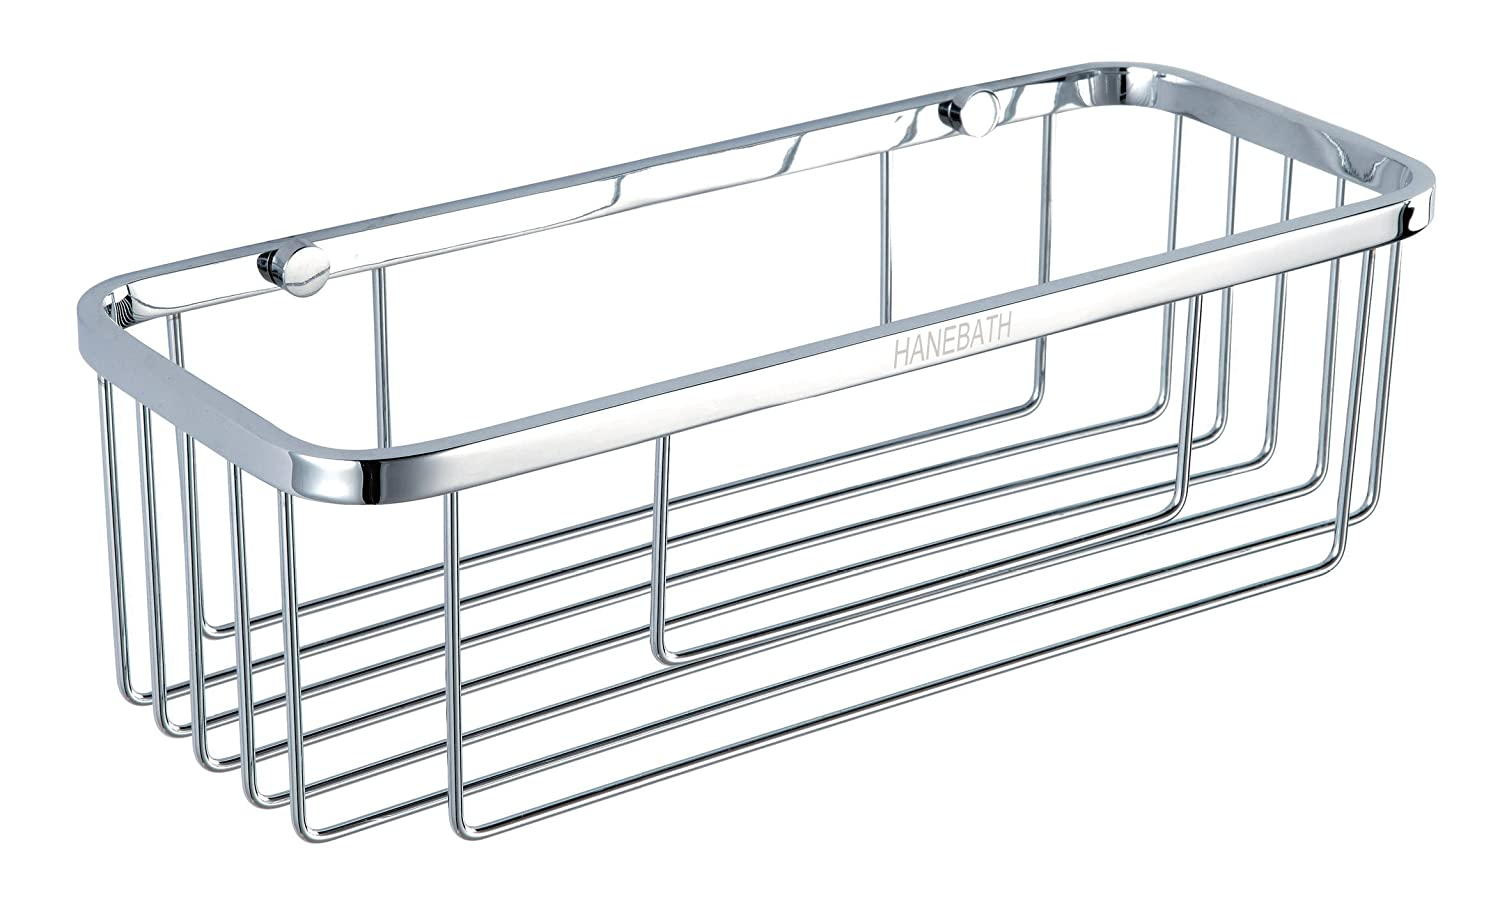 Amazon.com: Rustproof Shower Caddy - Stainless Steel Wall Mount ...